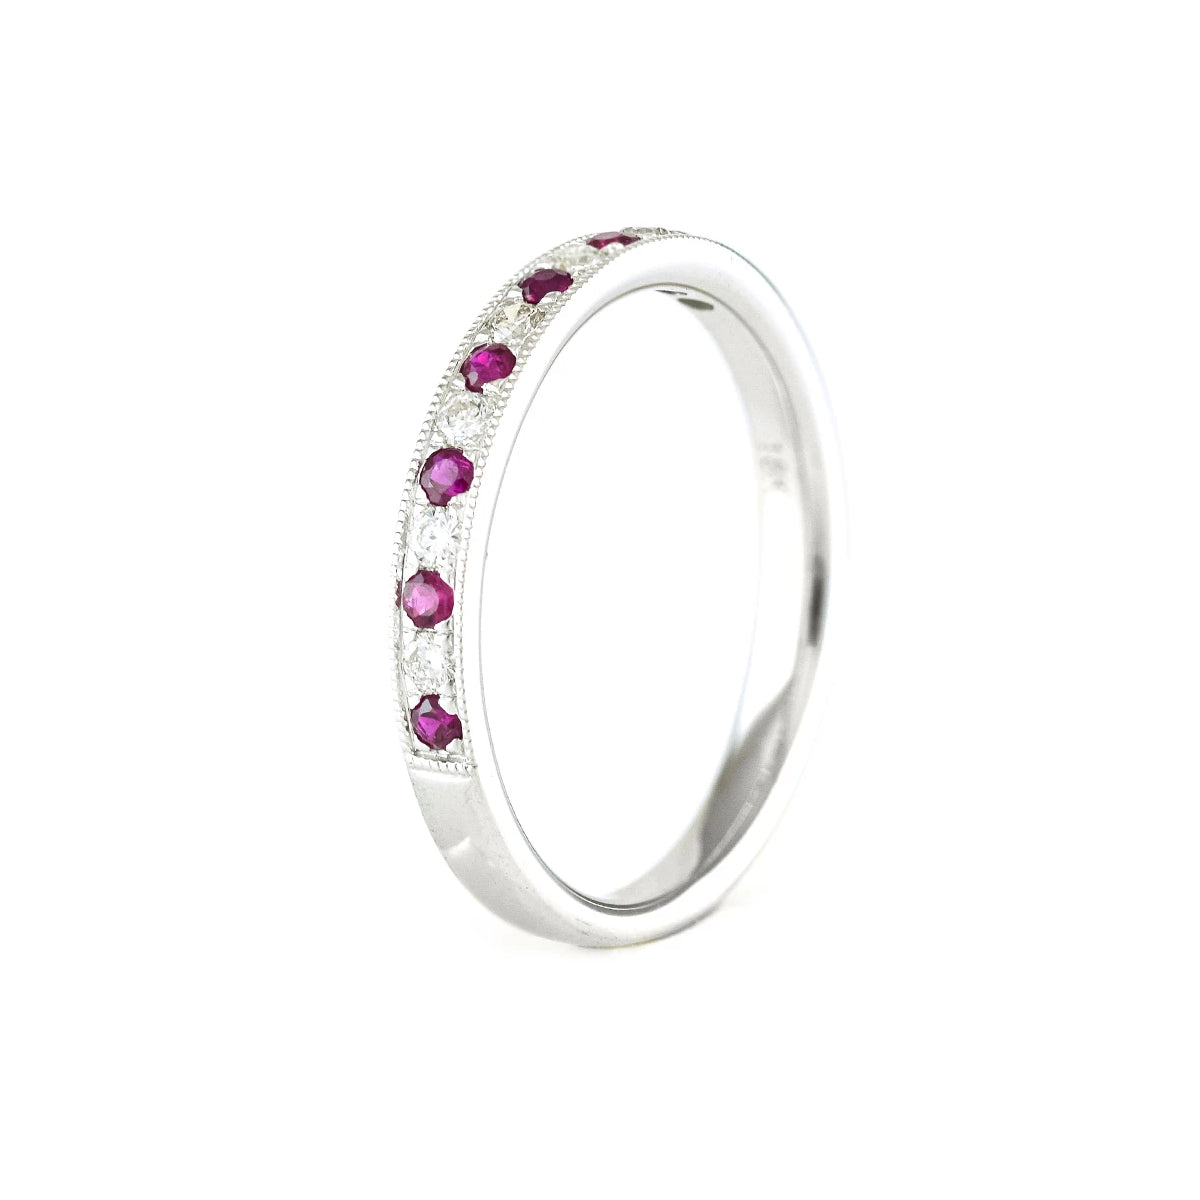 Half eternity ring set with round rubies and diamonds